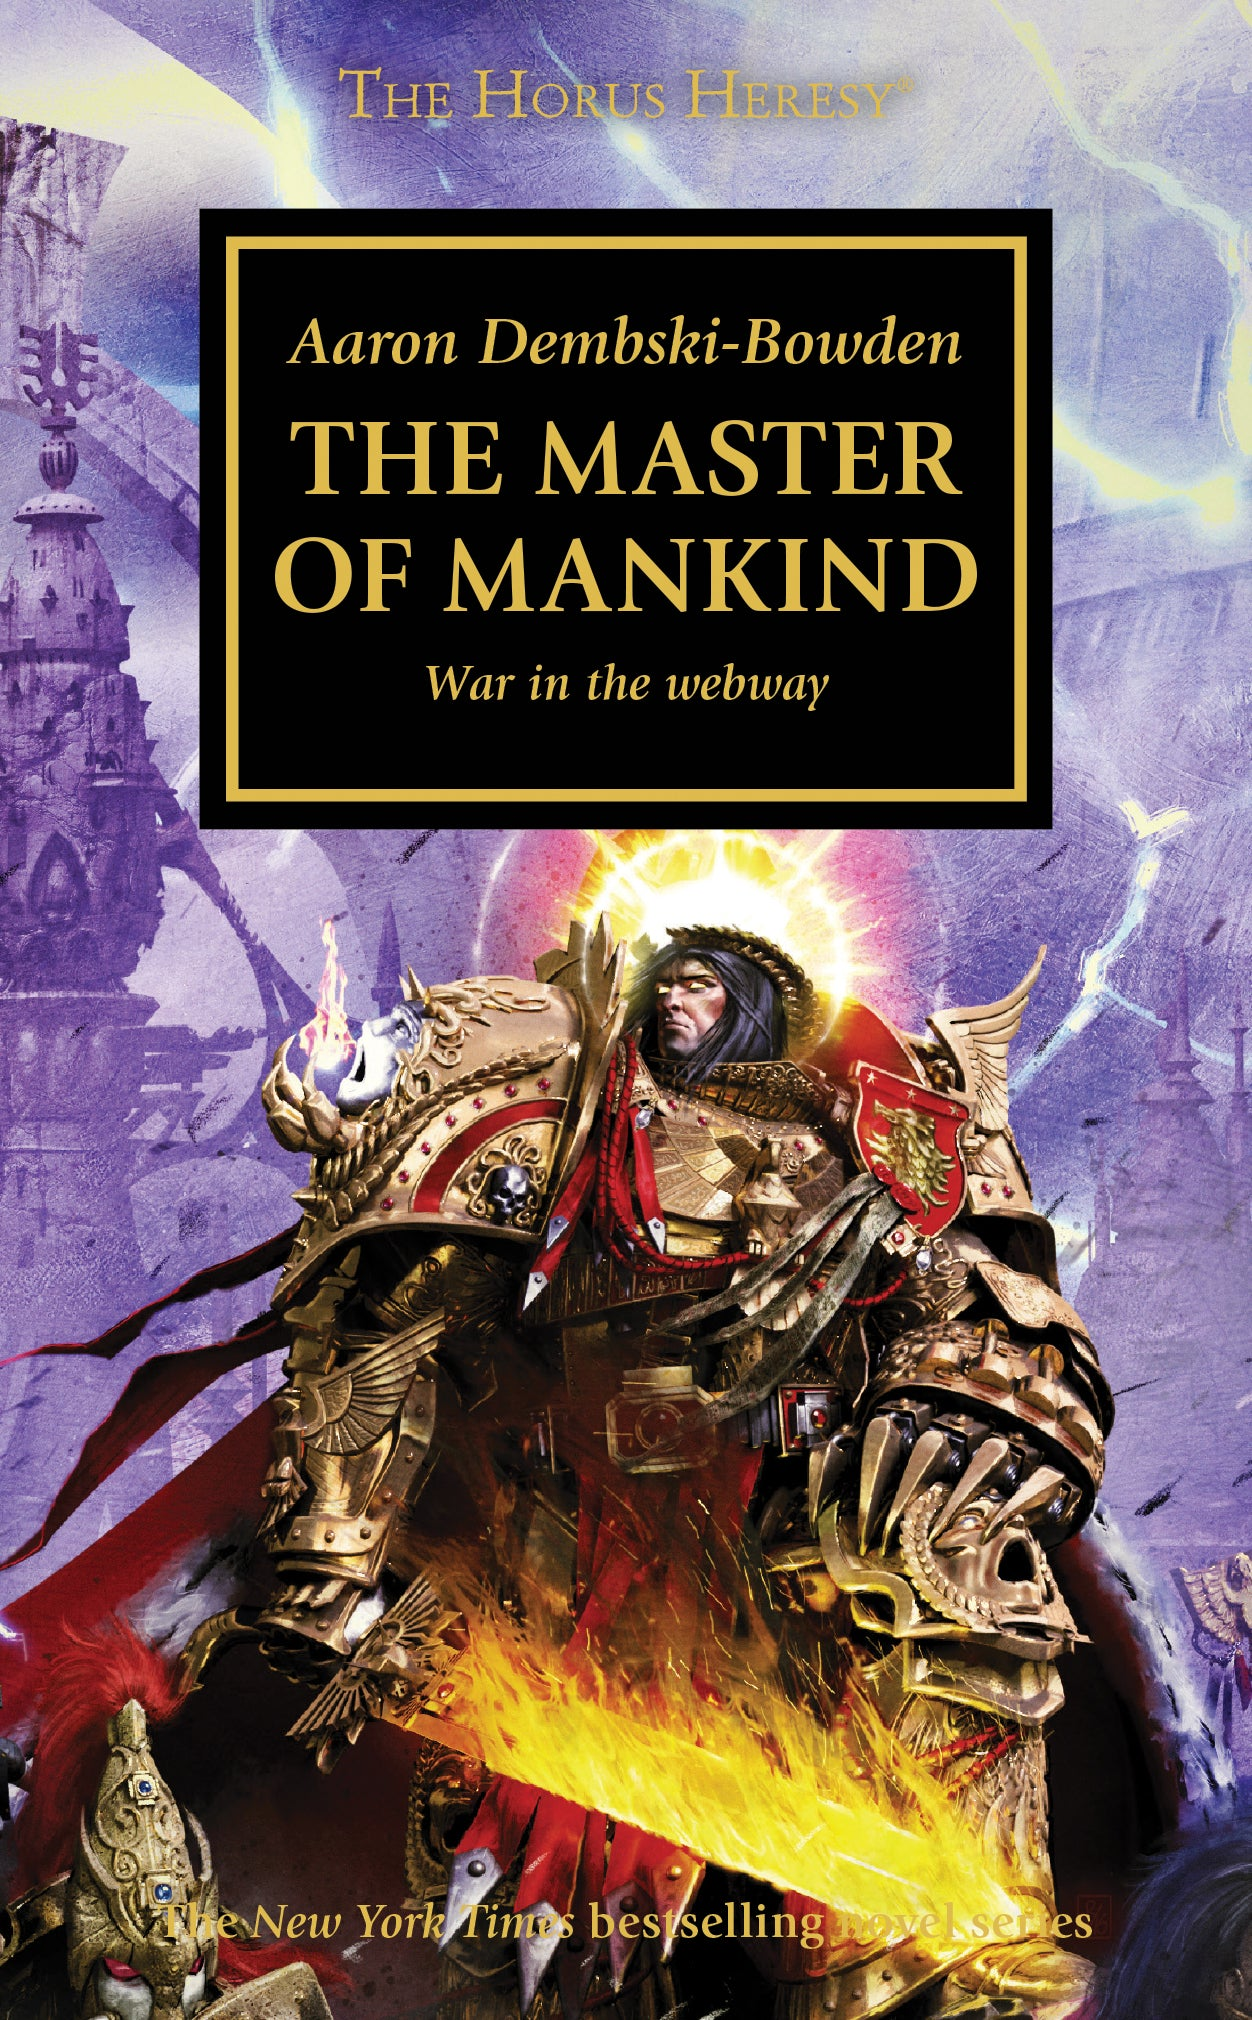 The Horus Heresy: The Master Of Mankind | Nerd Geek U